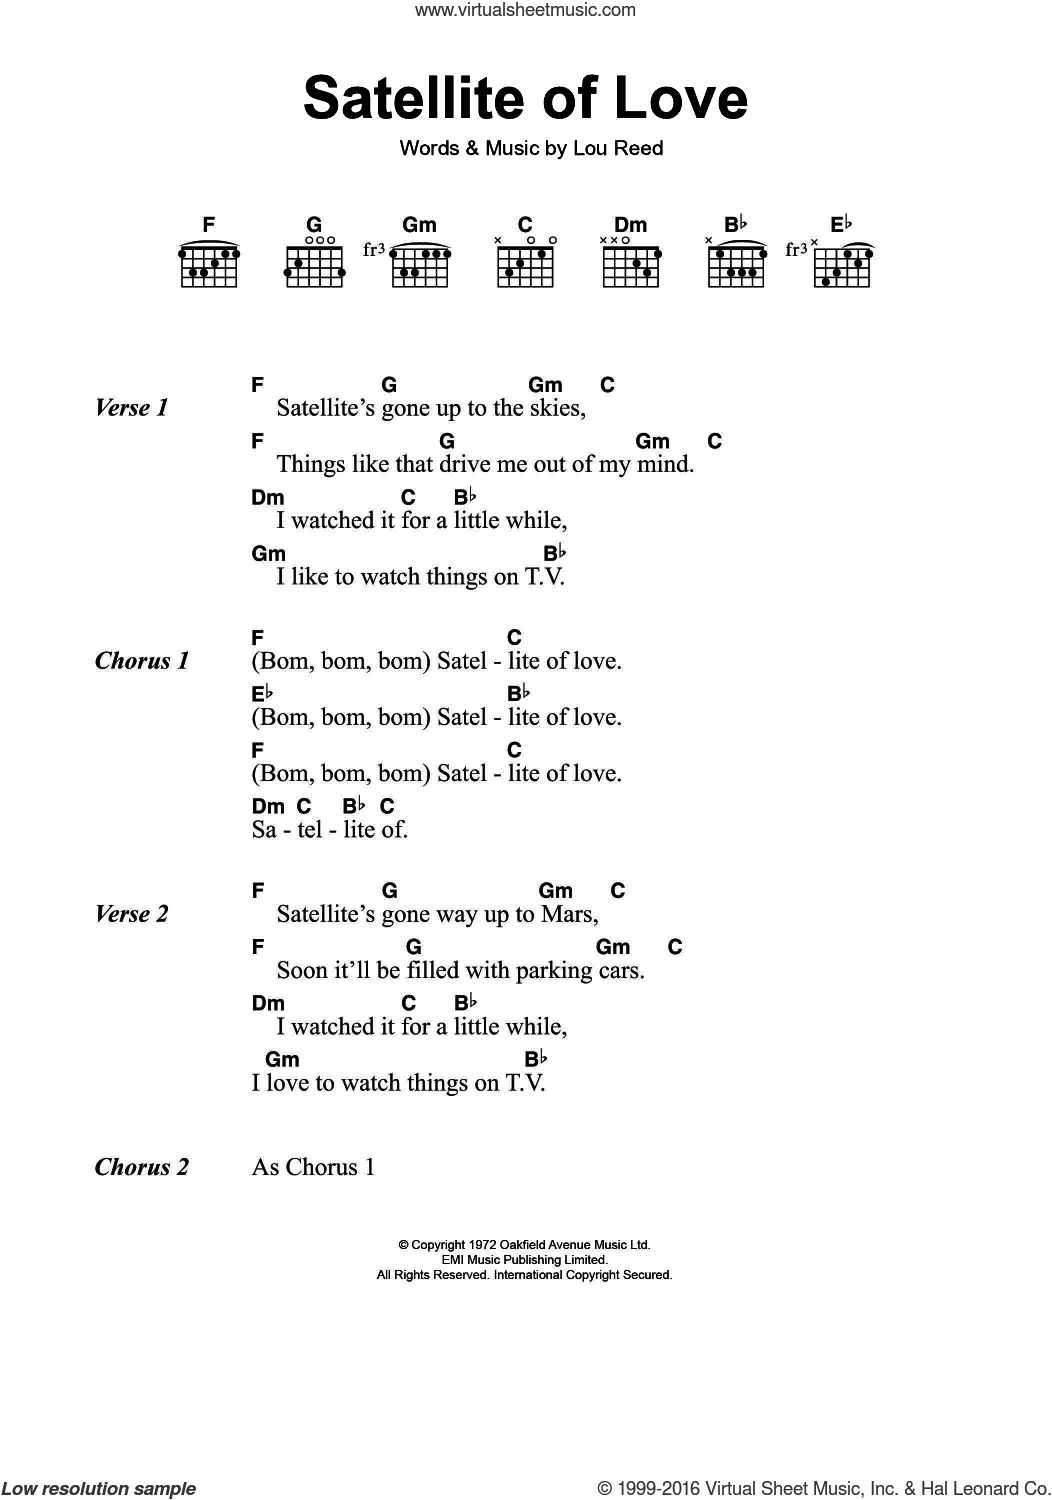 Satellite Of Love sheet music for guitar (chords) by Lou Reed, intermediate skill level